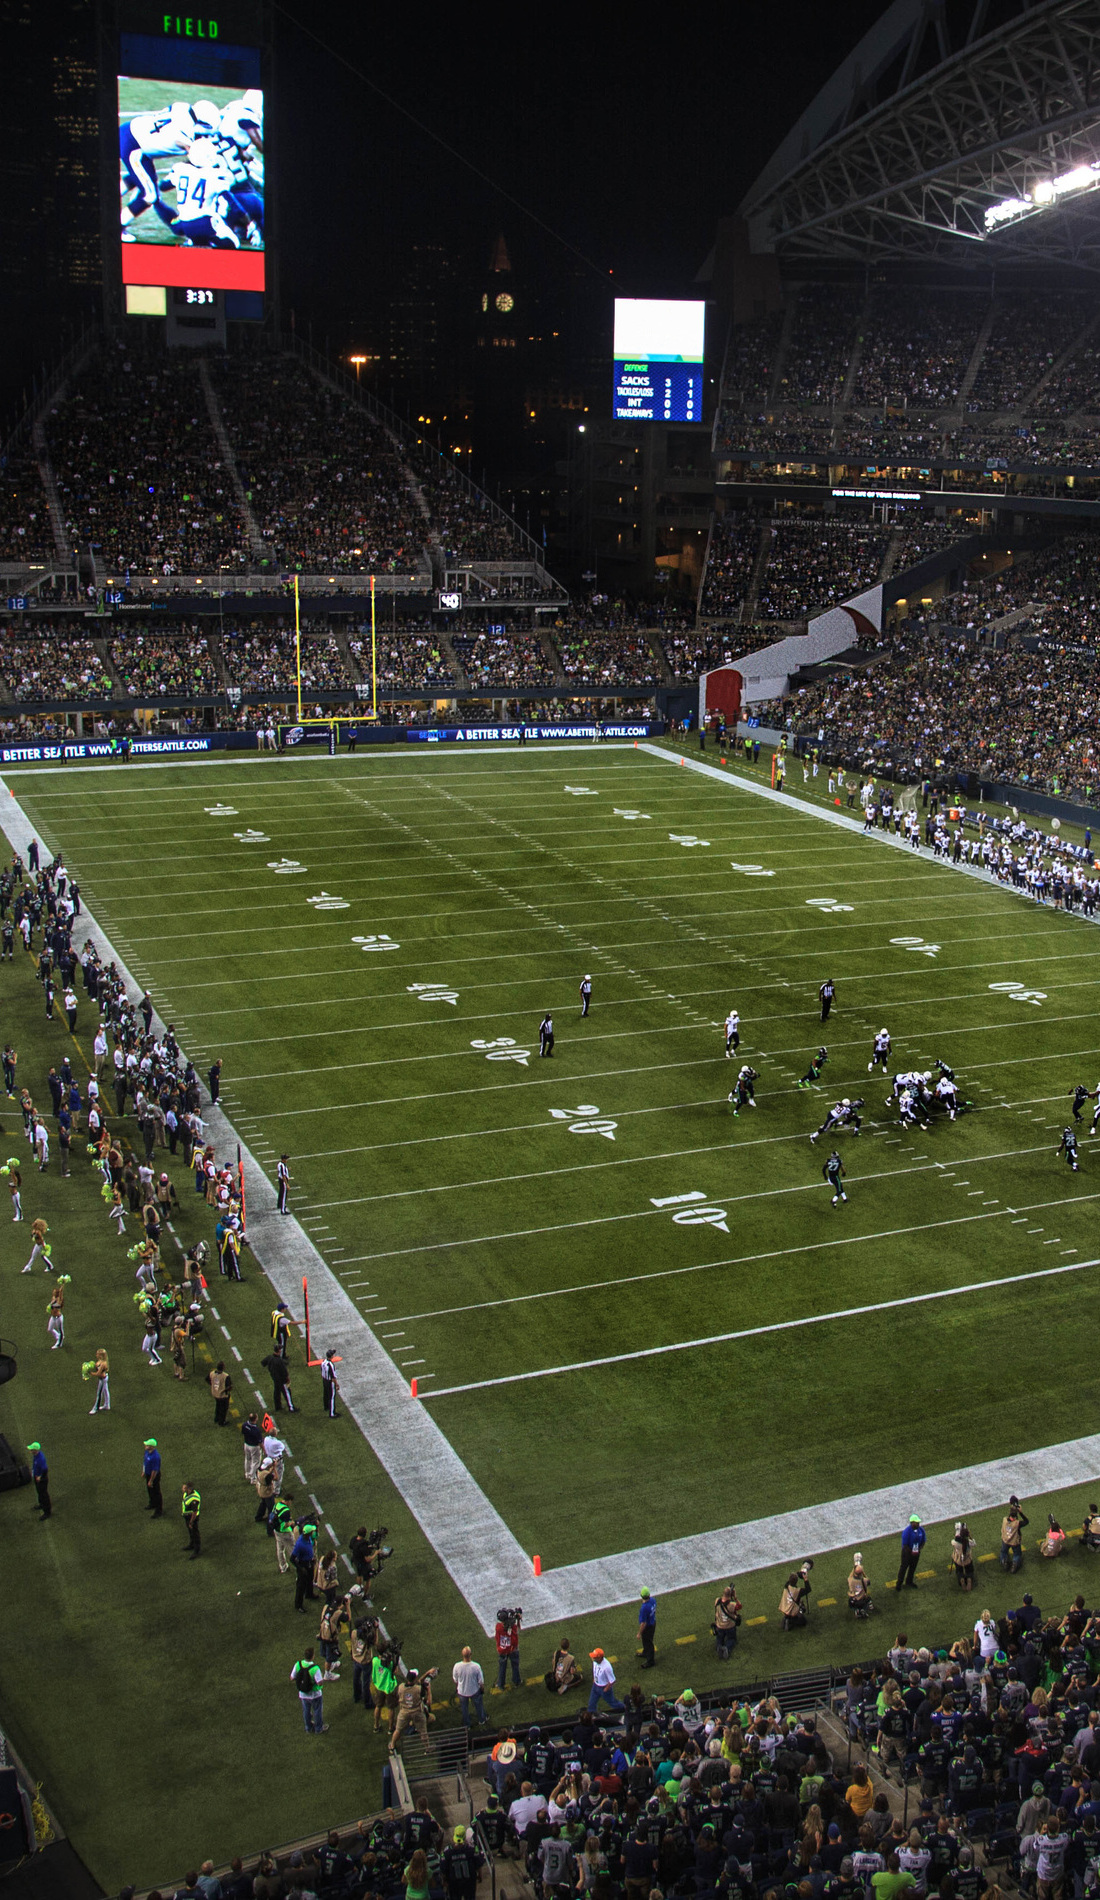 A Seattle Seahawks live event